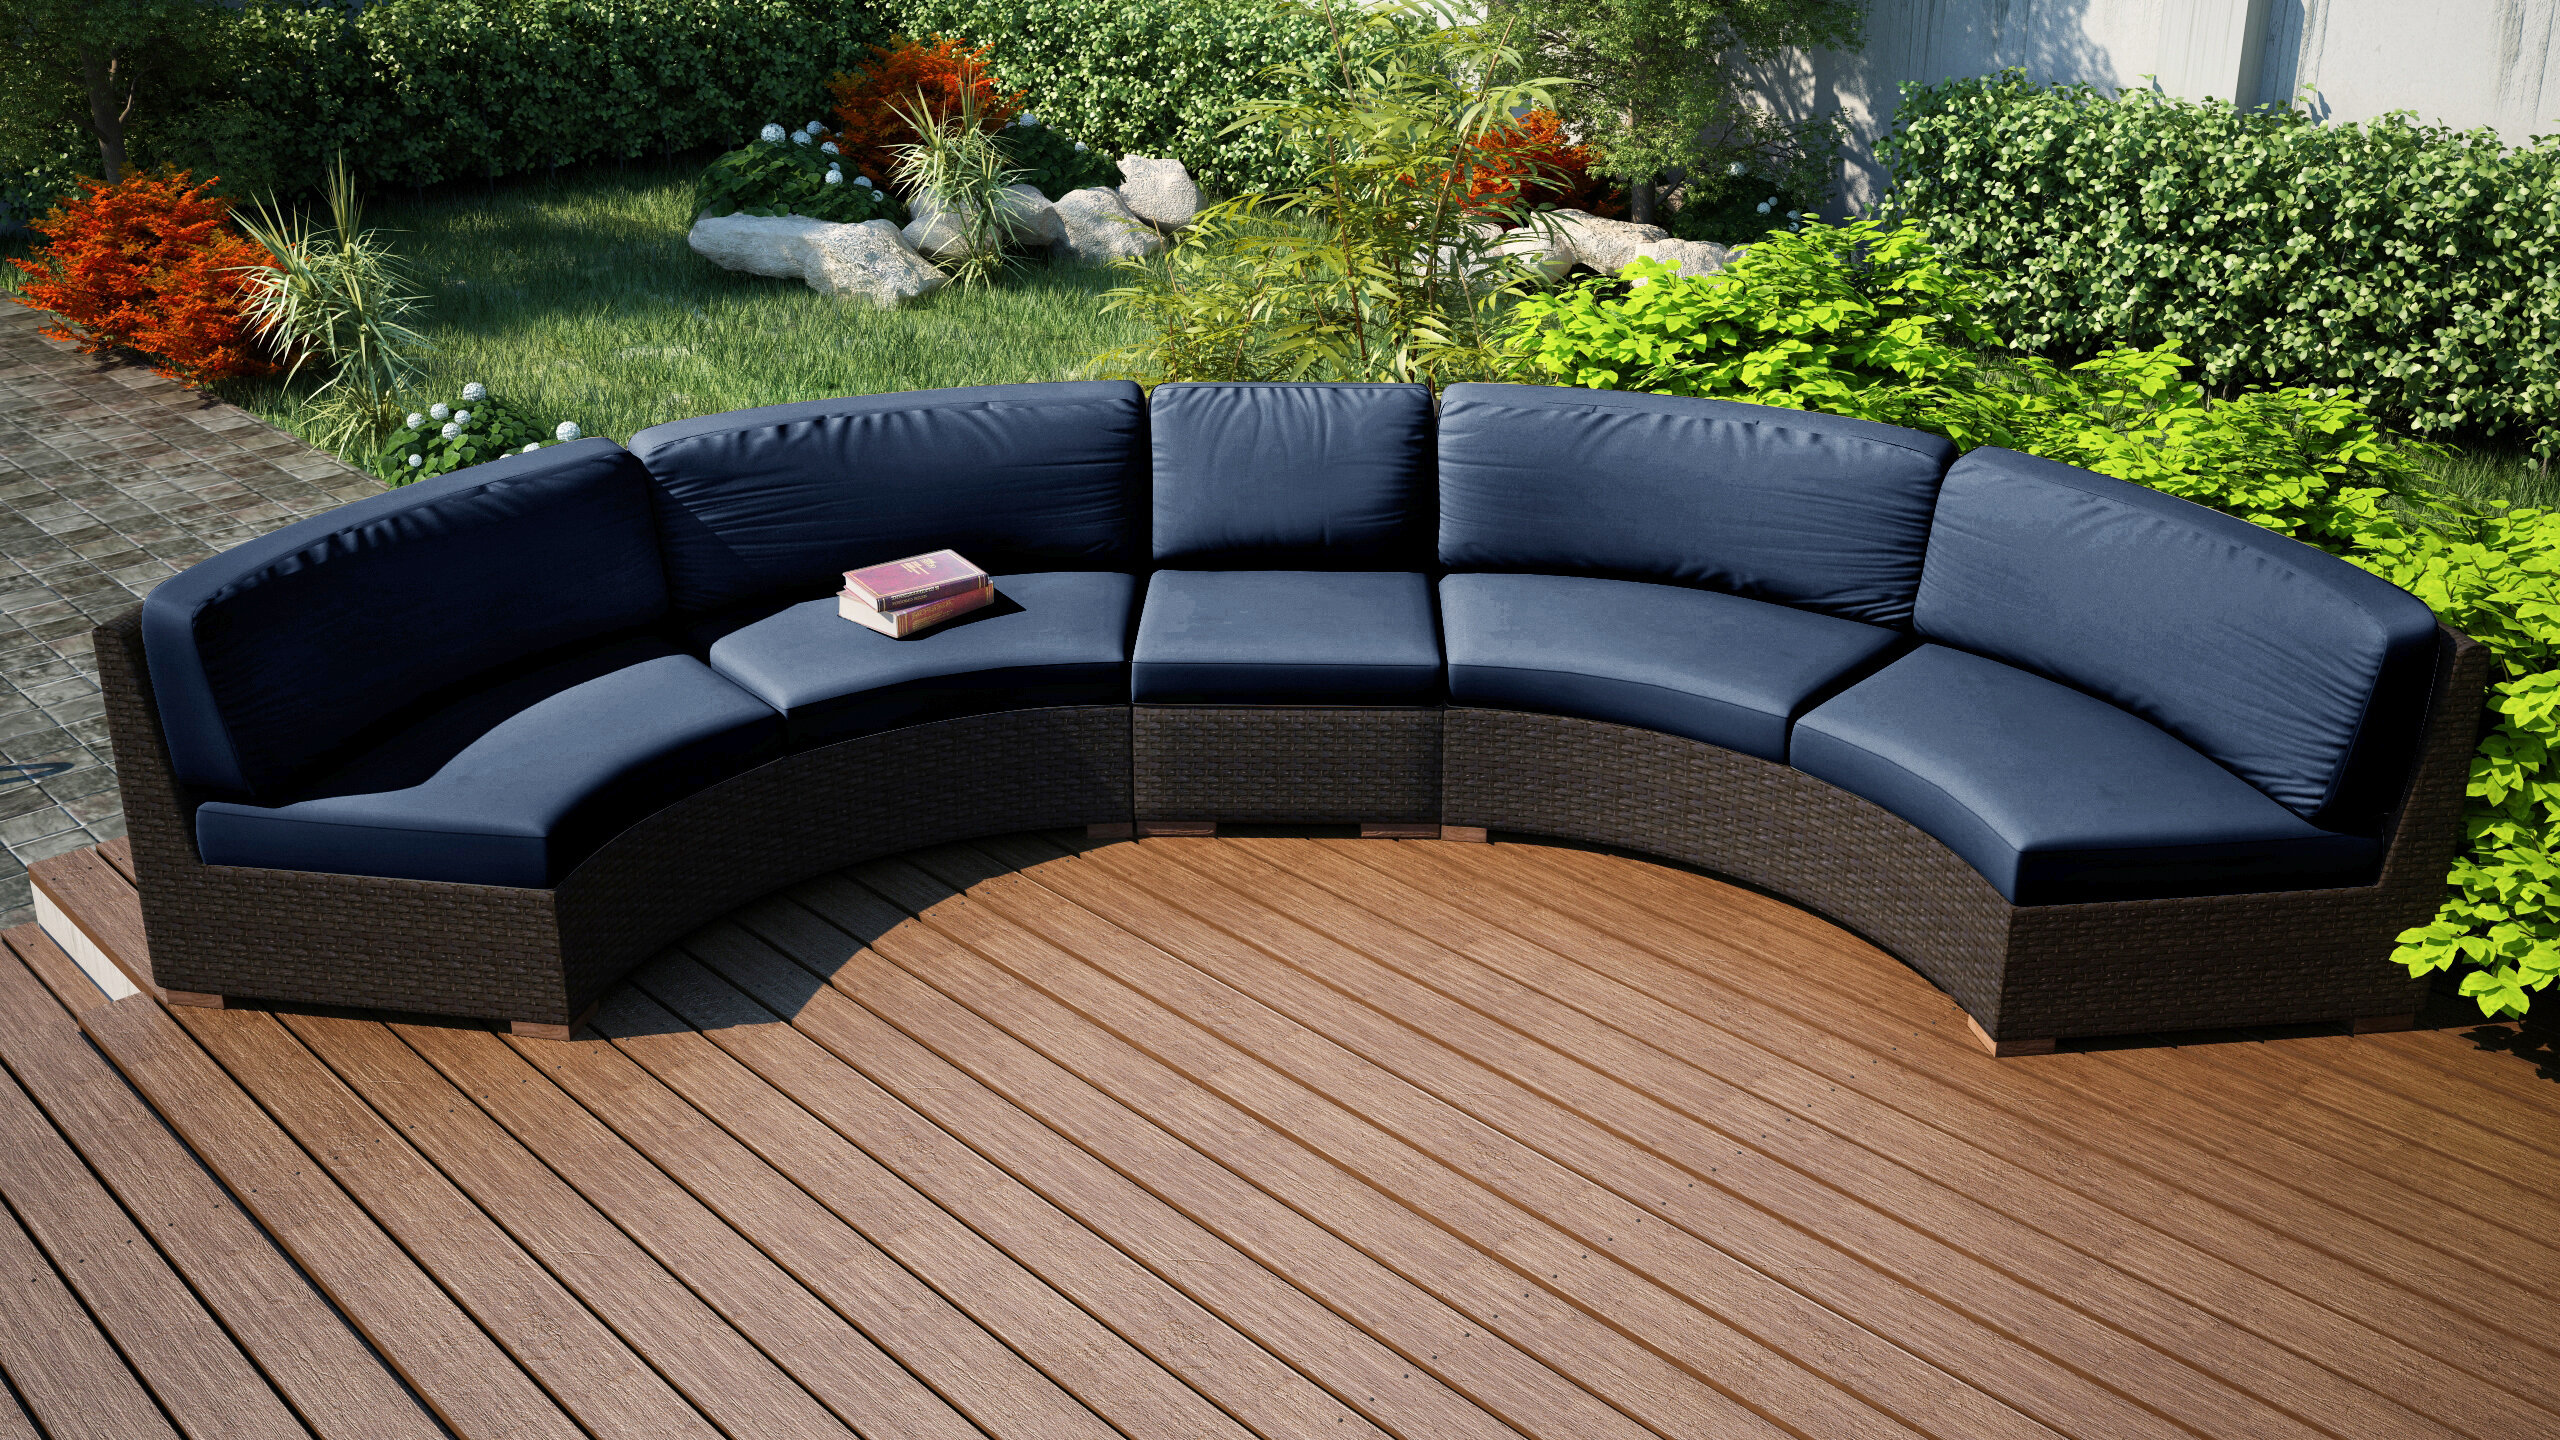 Merveilleux Rosecliff Heights Hodge Extended Curved Patio Sectional With Cushions |  Wayfair